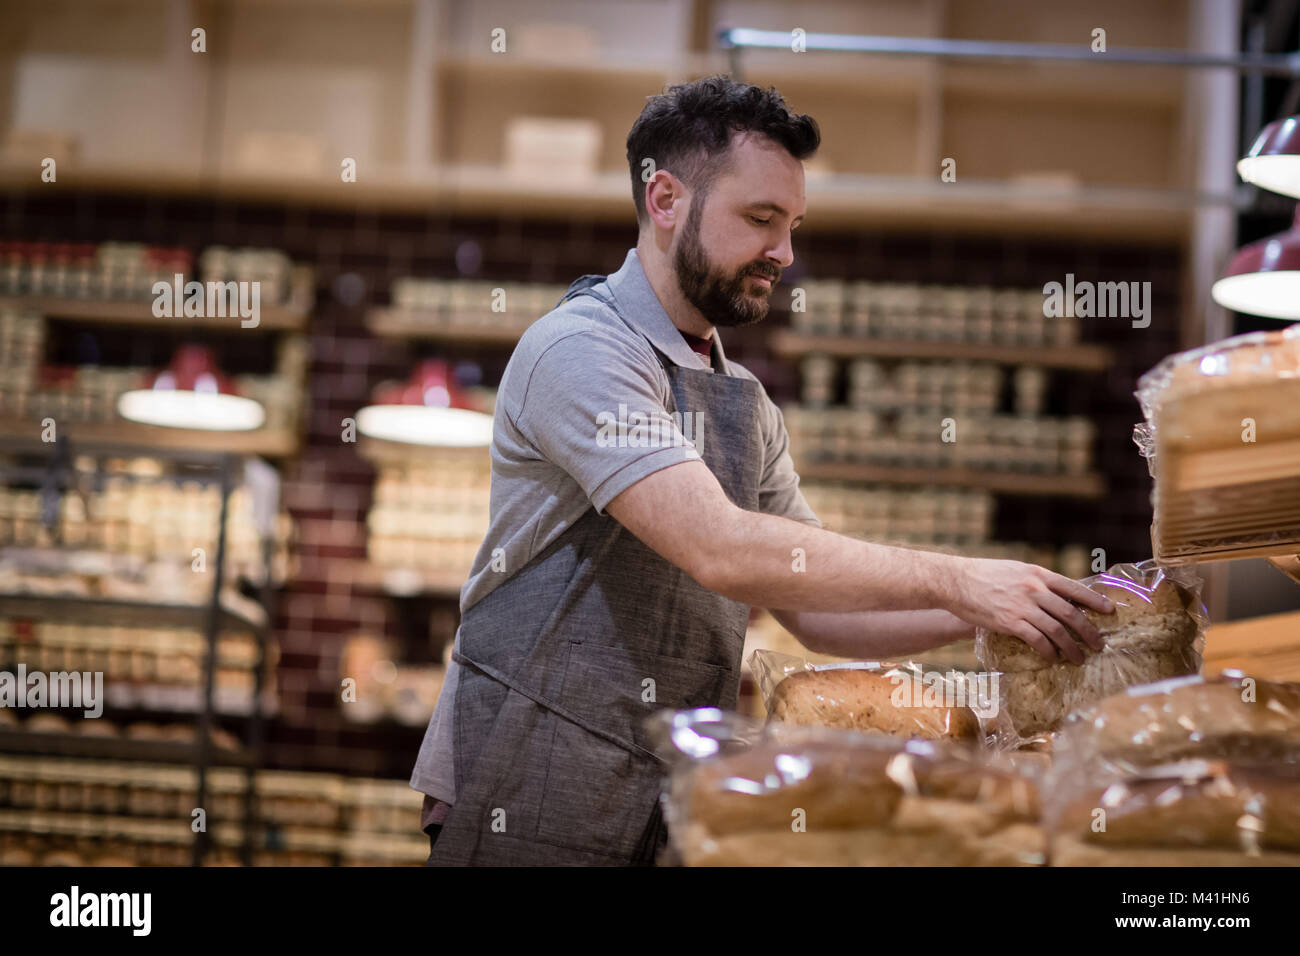 Baker in bakery stocking shelves and looking to camera - Stock Image